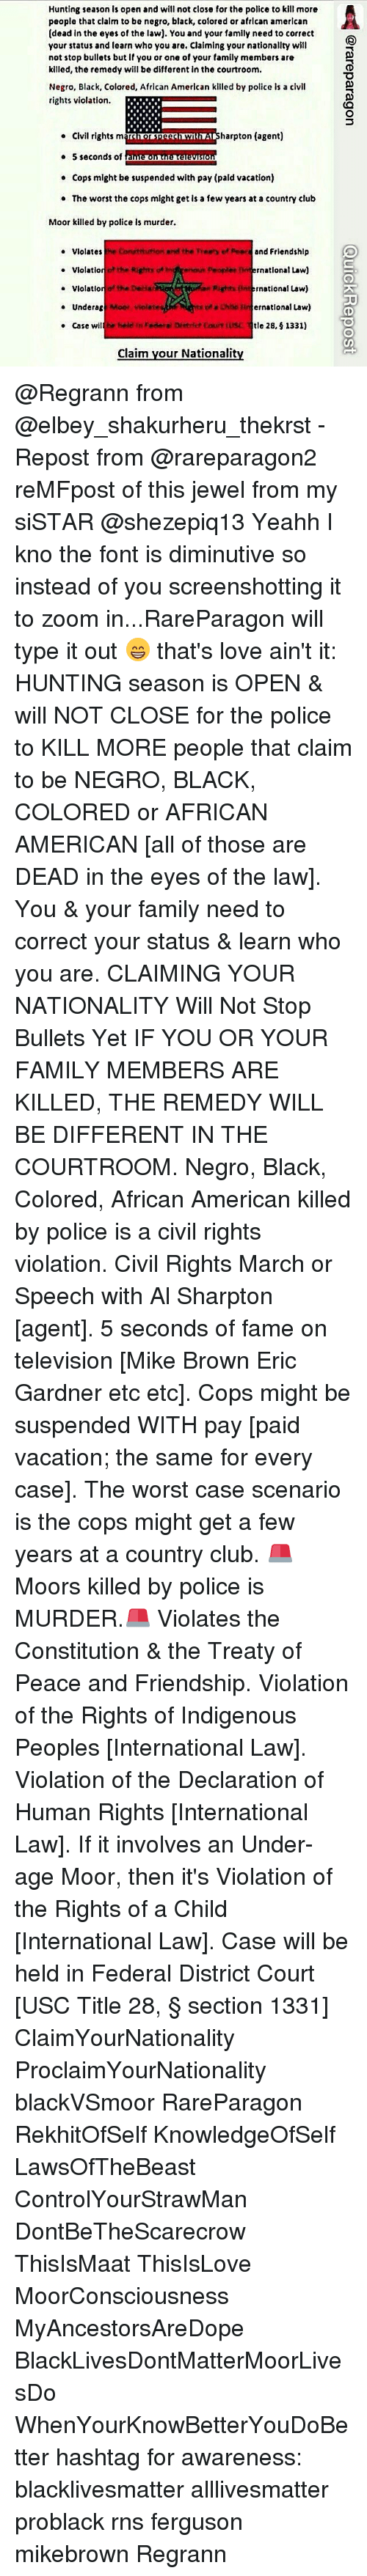 Al Sharpton, Club, and Memes: Hunting season is open and will not close